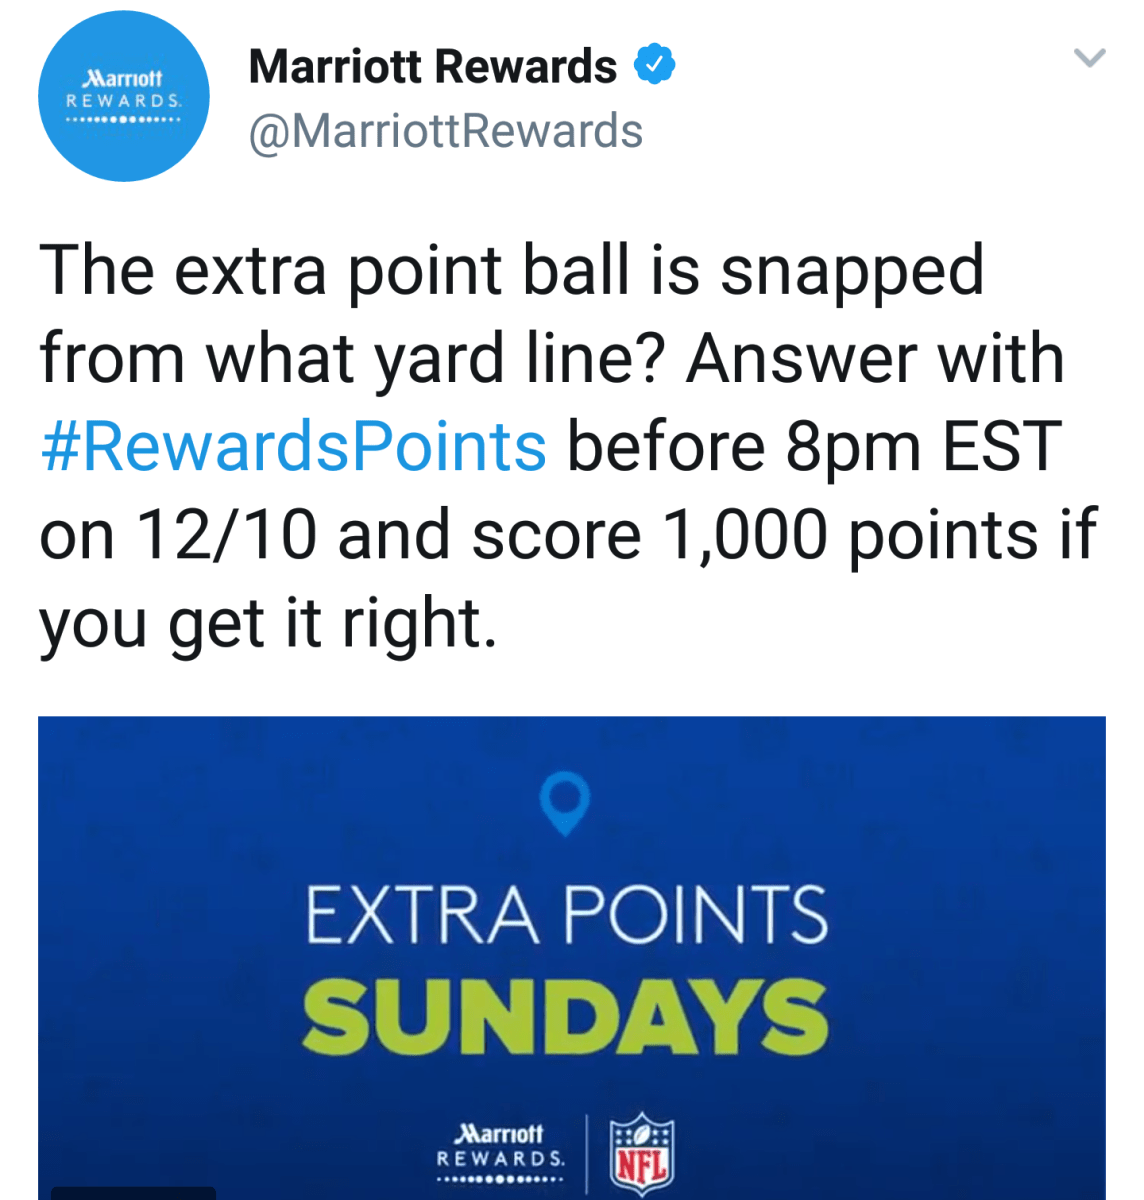 Get Your Free 1,000 Marriott Point This Sunday